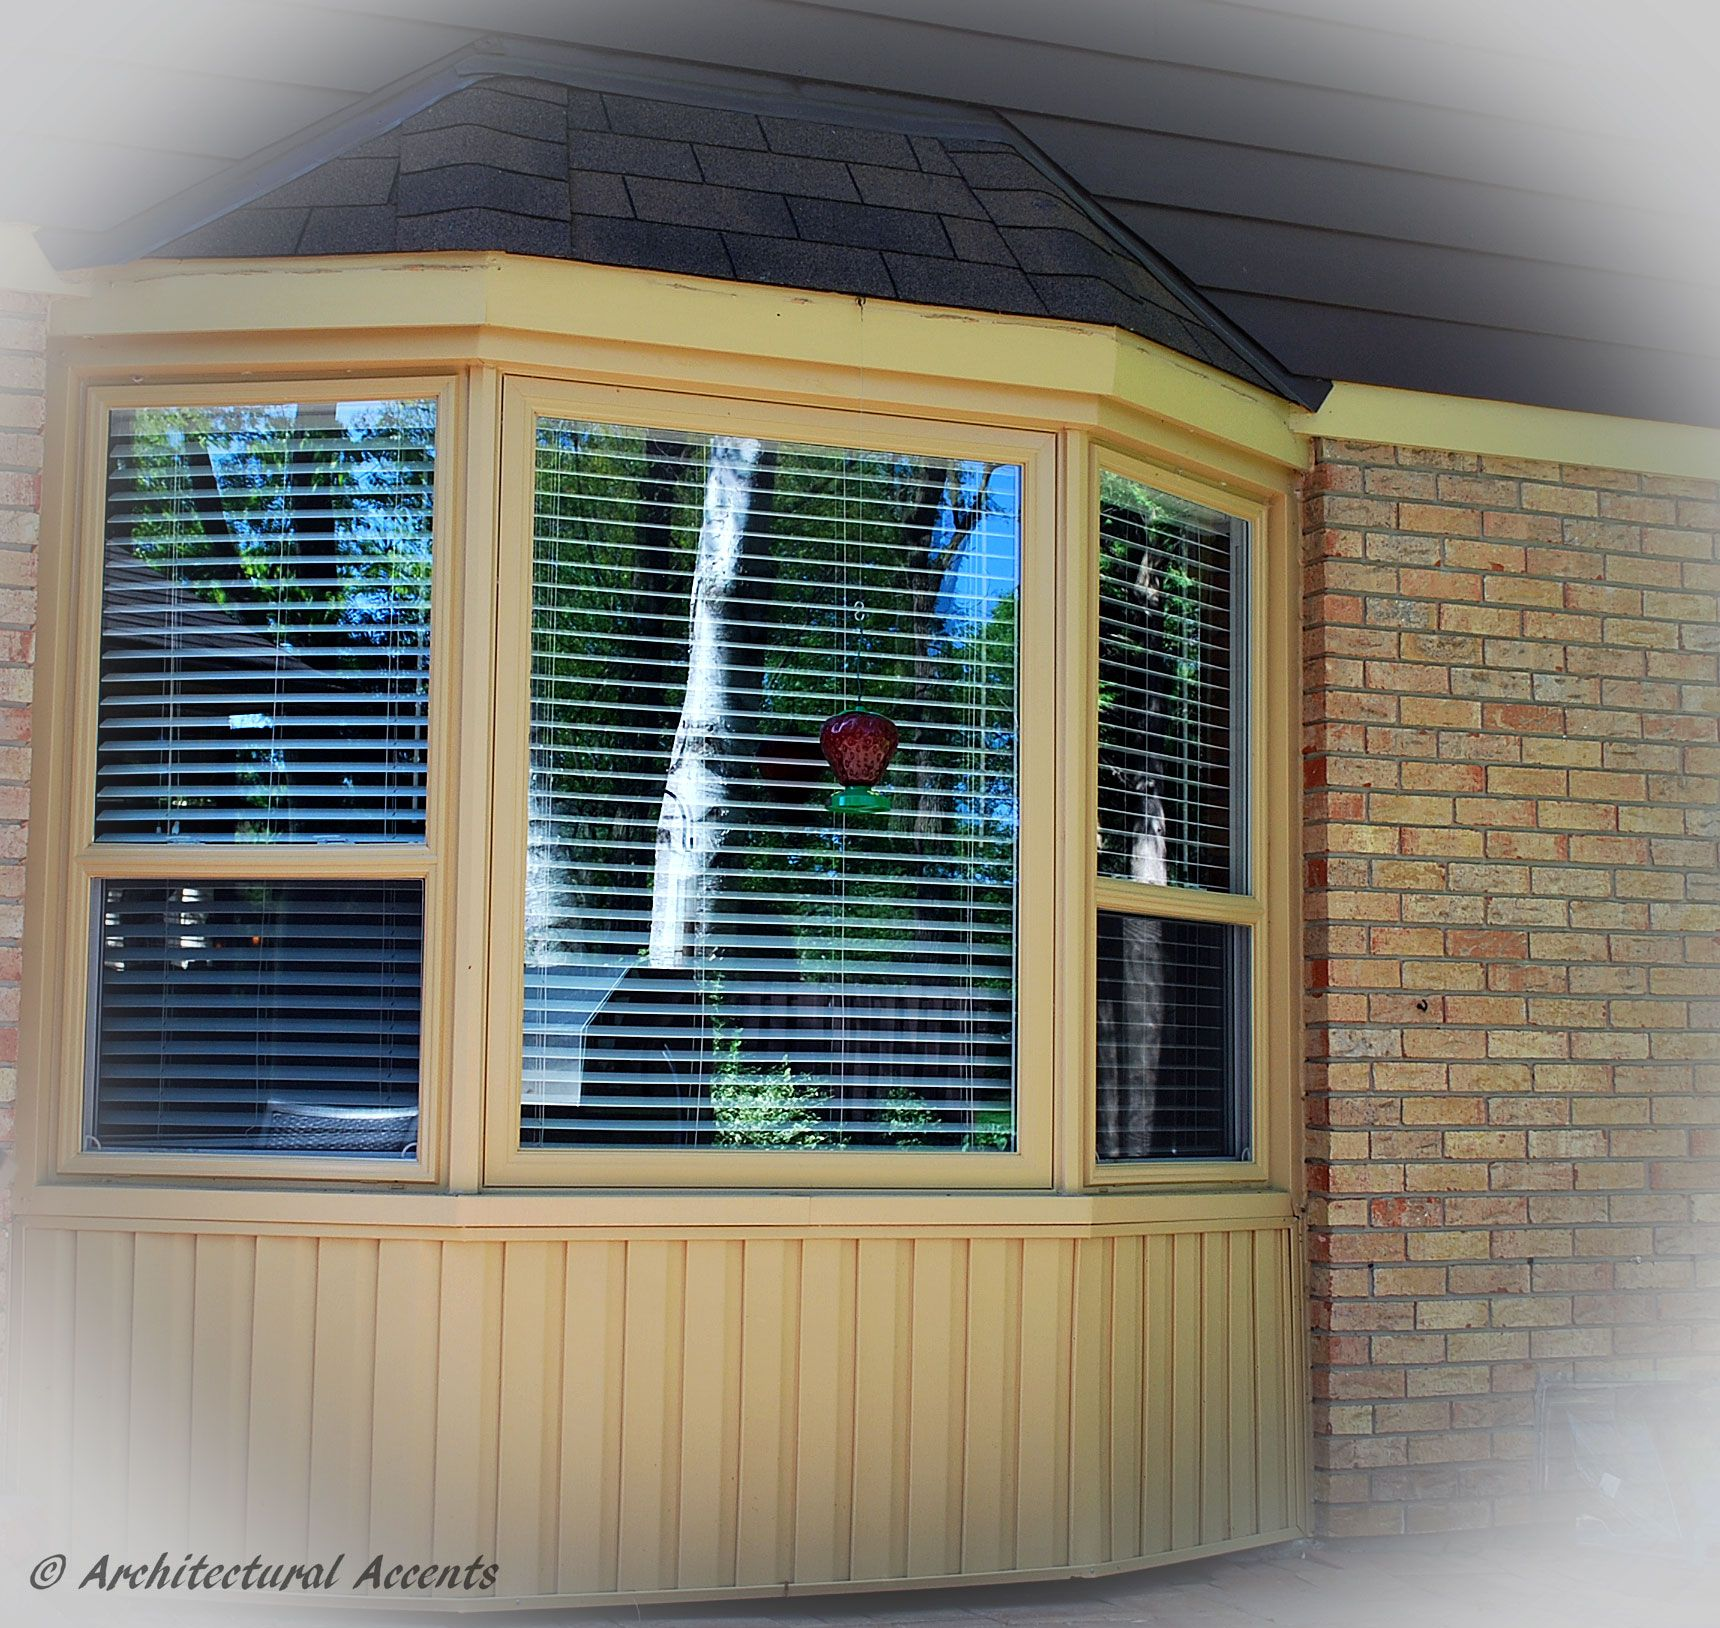 Bay windows exterior view - Bay Window With Single Hung Windows On The Sides And Fixed Window In The Middle